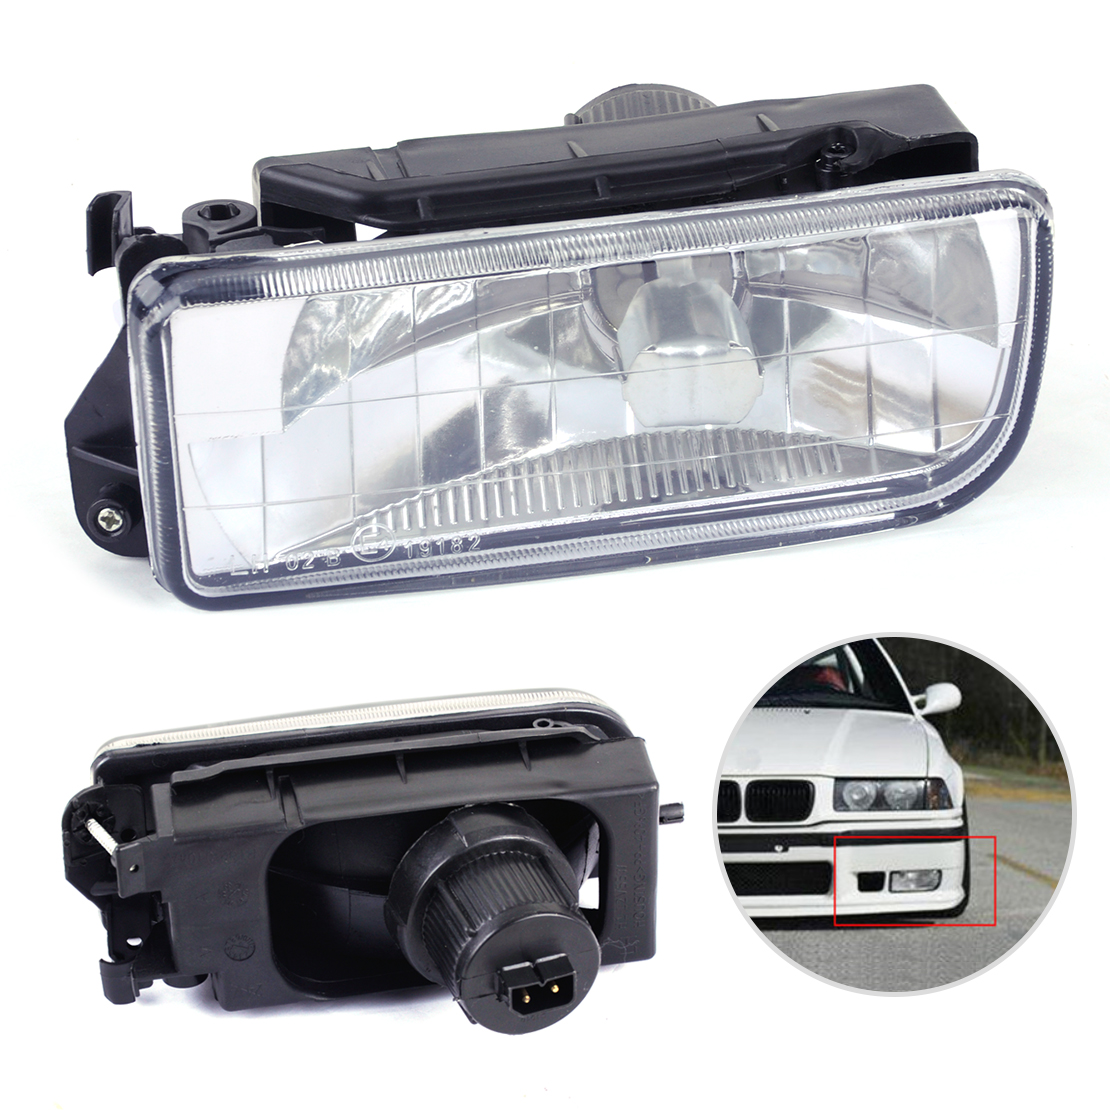 beler Left Bumper Driving Fog Light Housing Case Clear Lens 63178357389 fit for BMW E36 318i 318is 320i 323i 325i 328i M3 for bmw 3 series e36 318 328 323 325 front coilover strut camber plate top mount green drift front domlager top upper mount